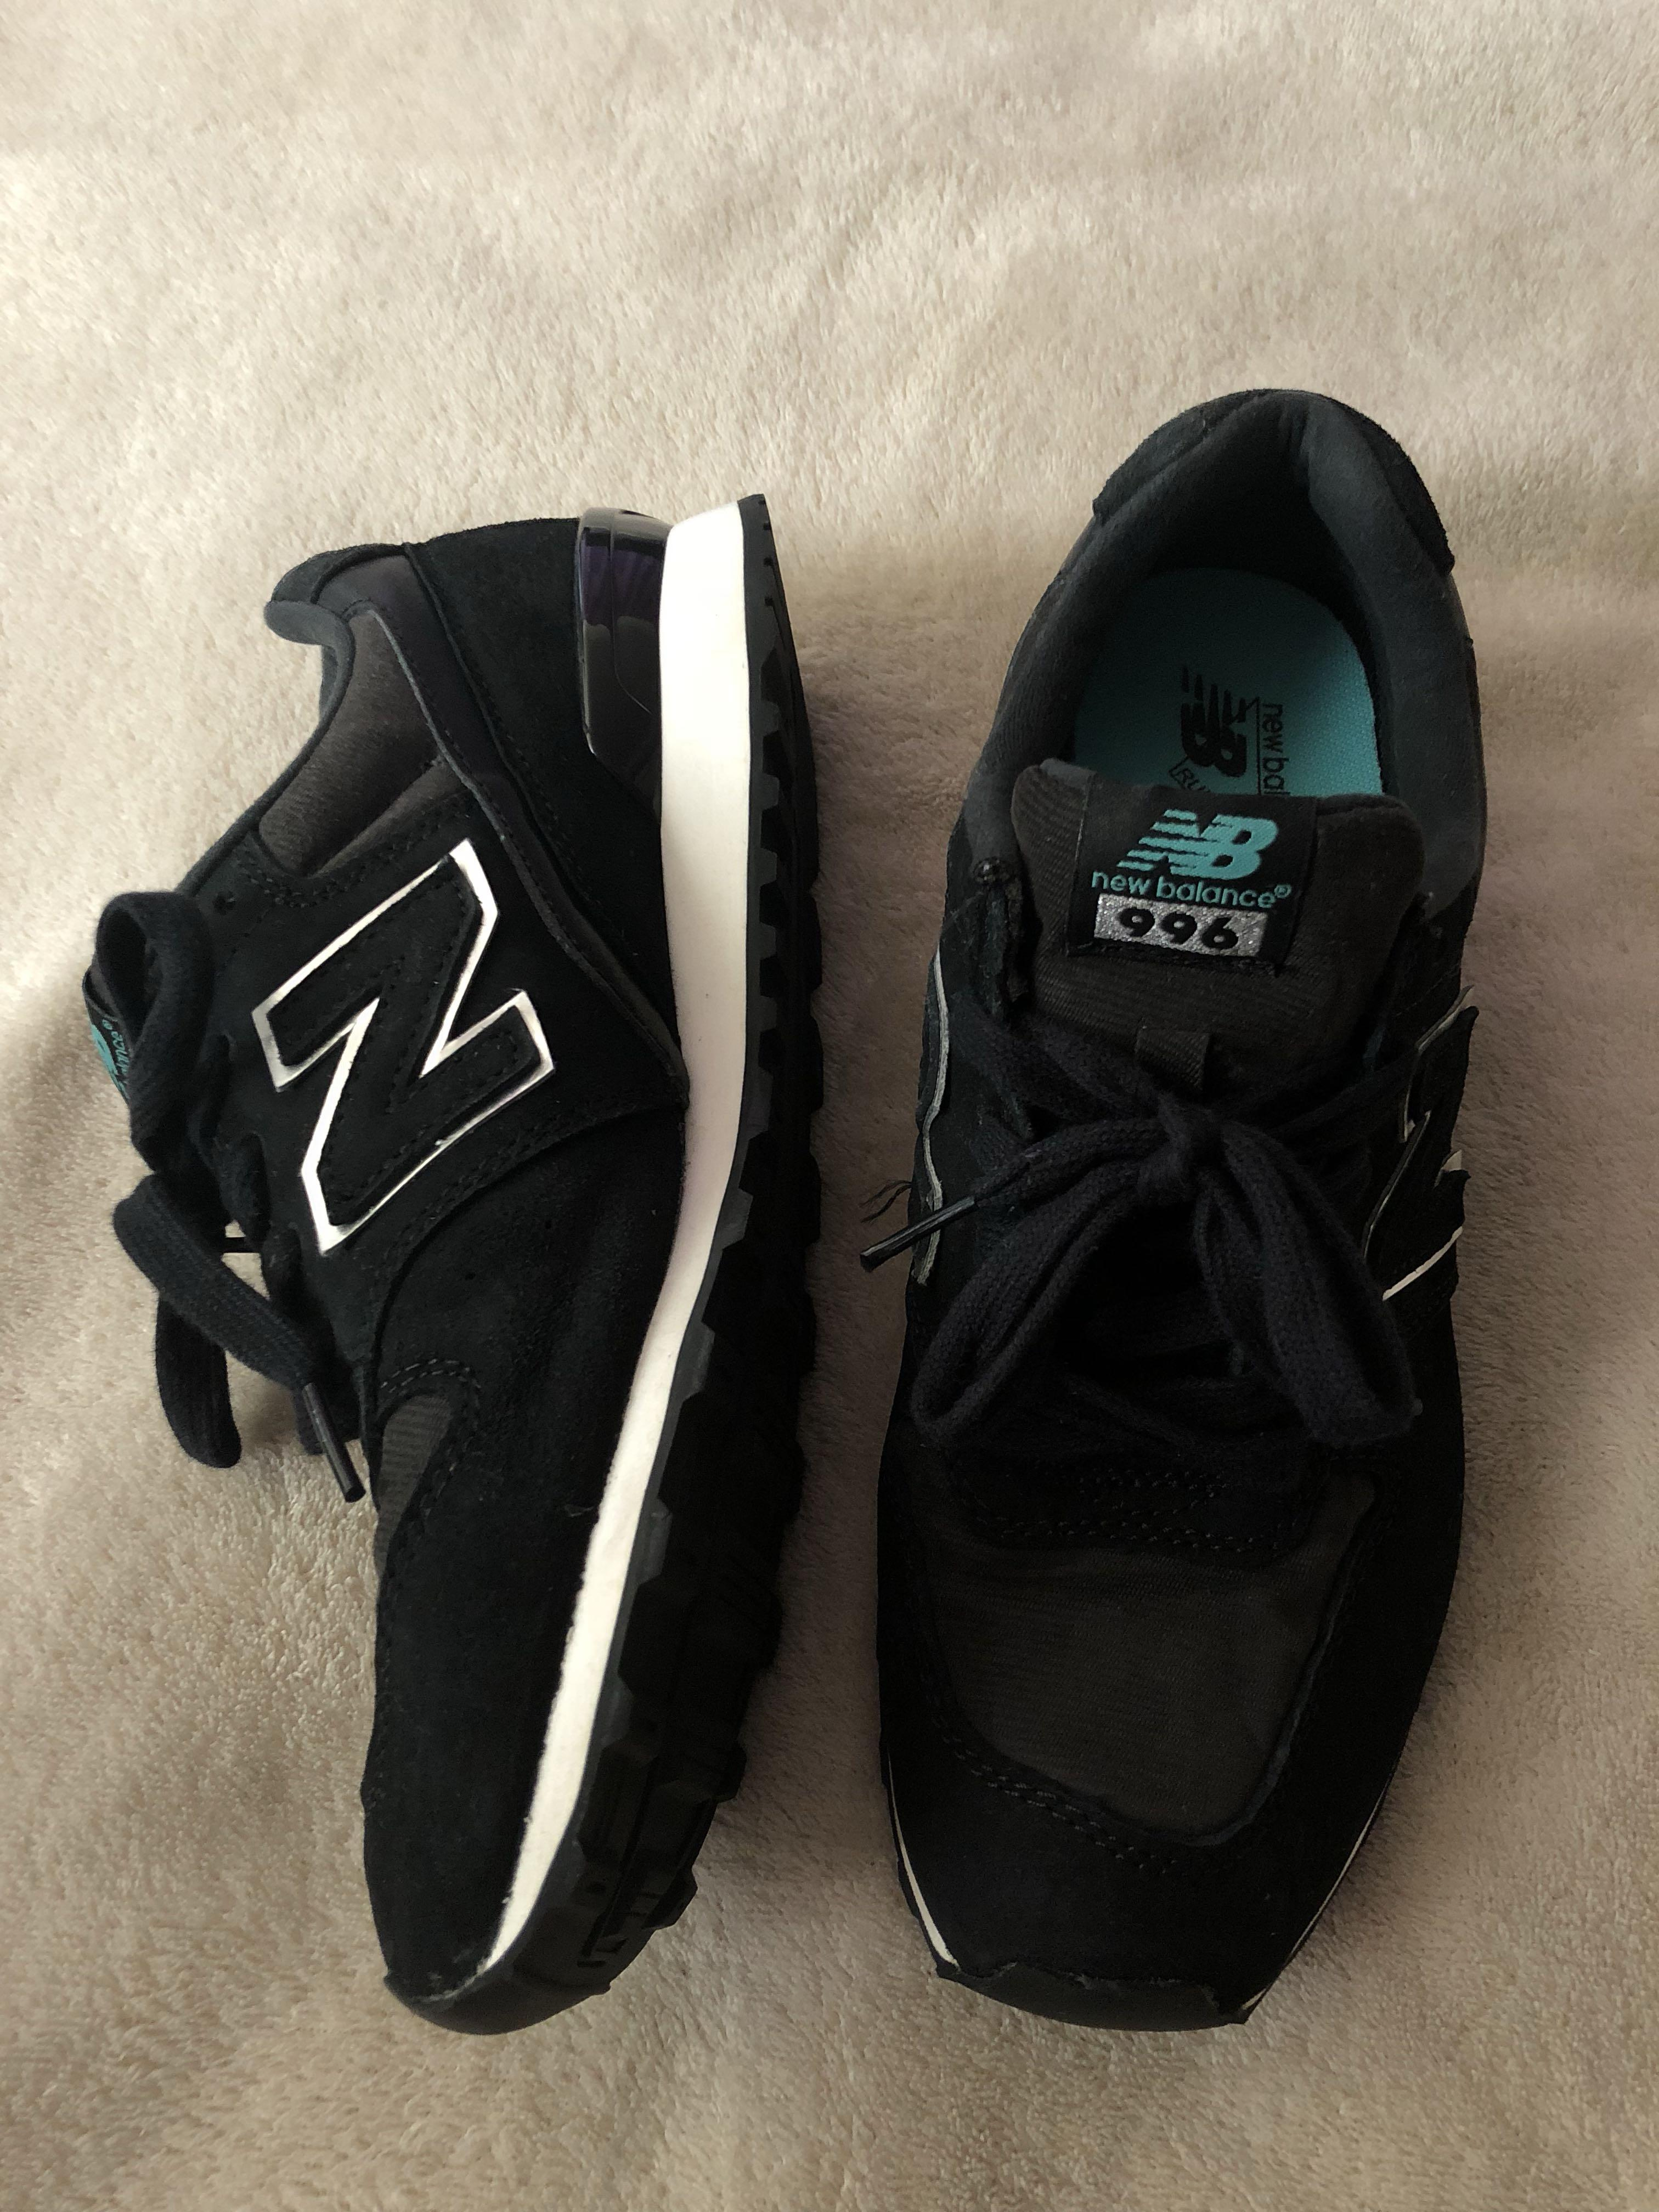 Women's New Balance sneakers